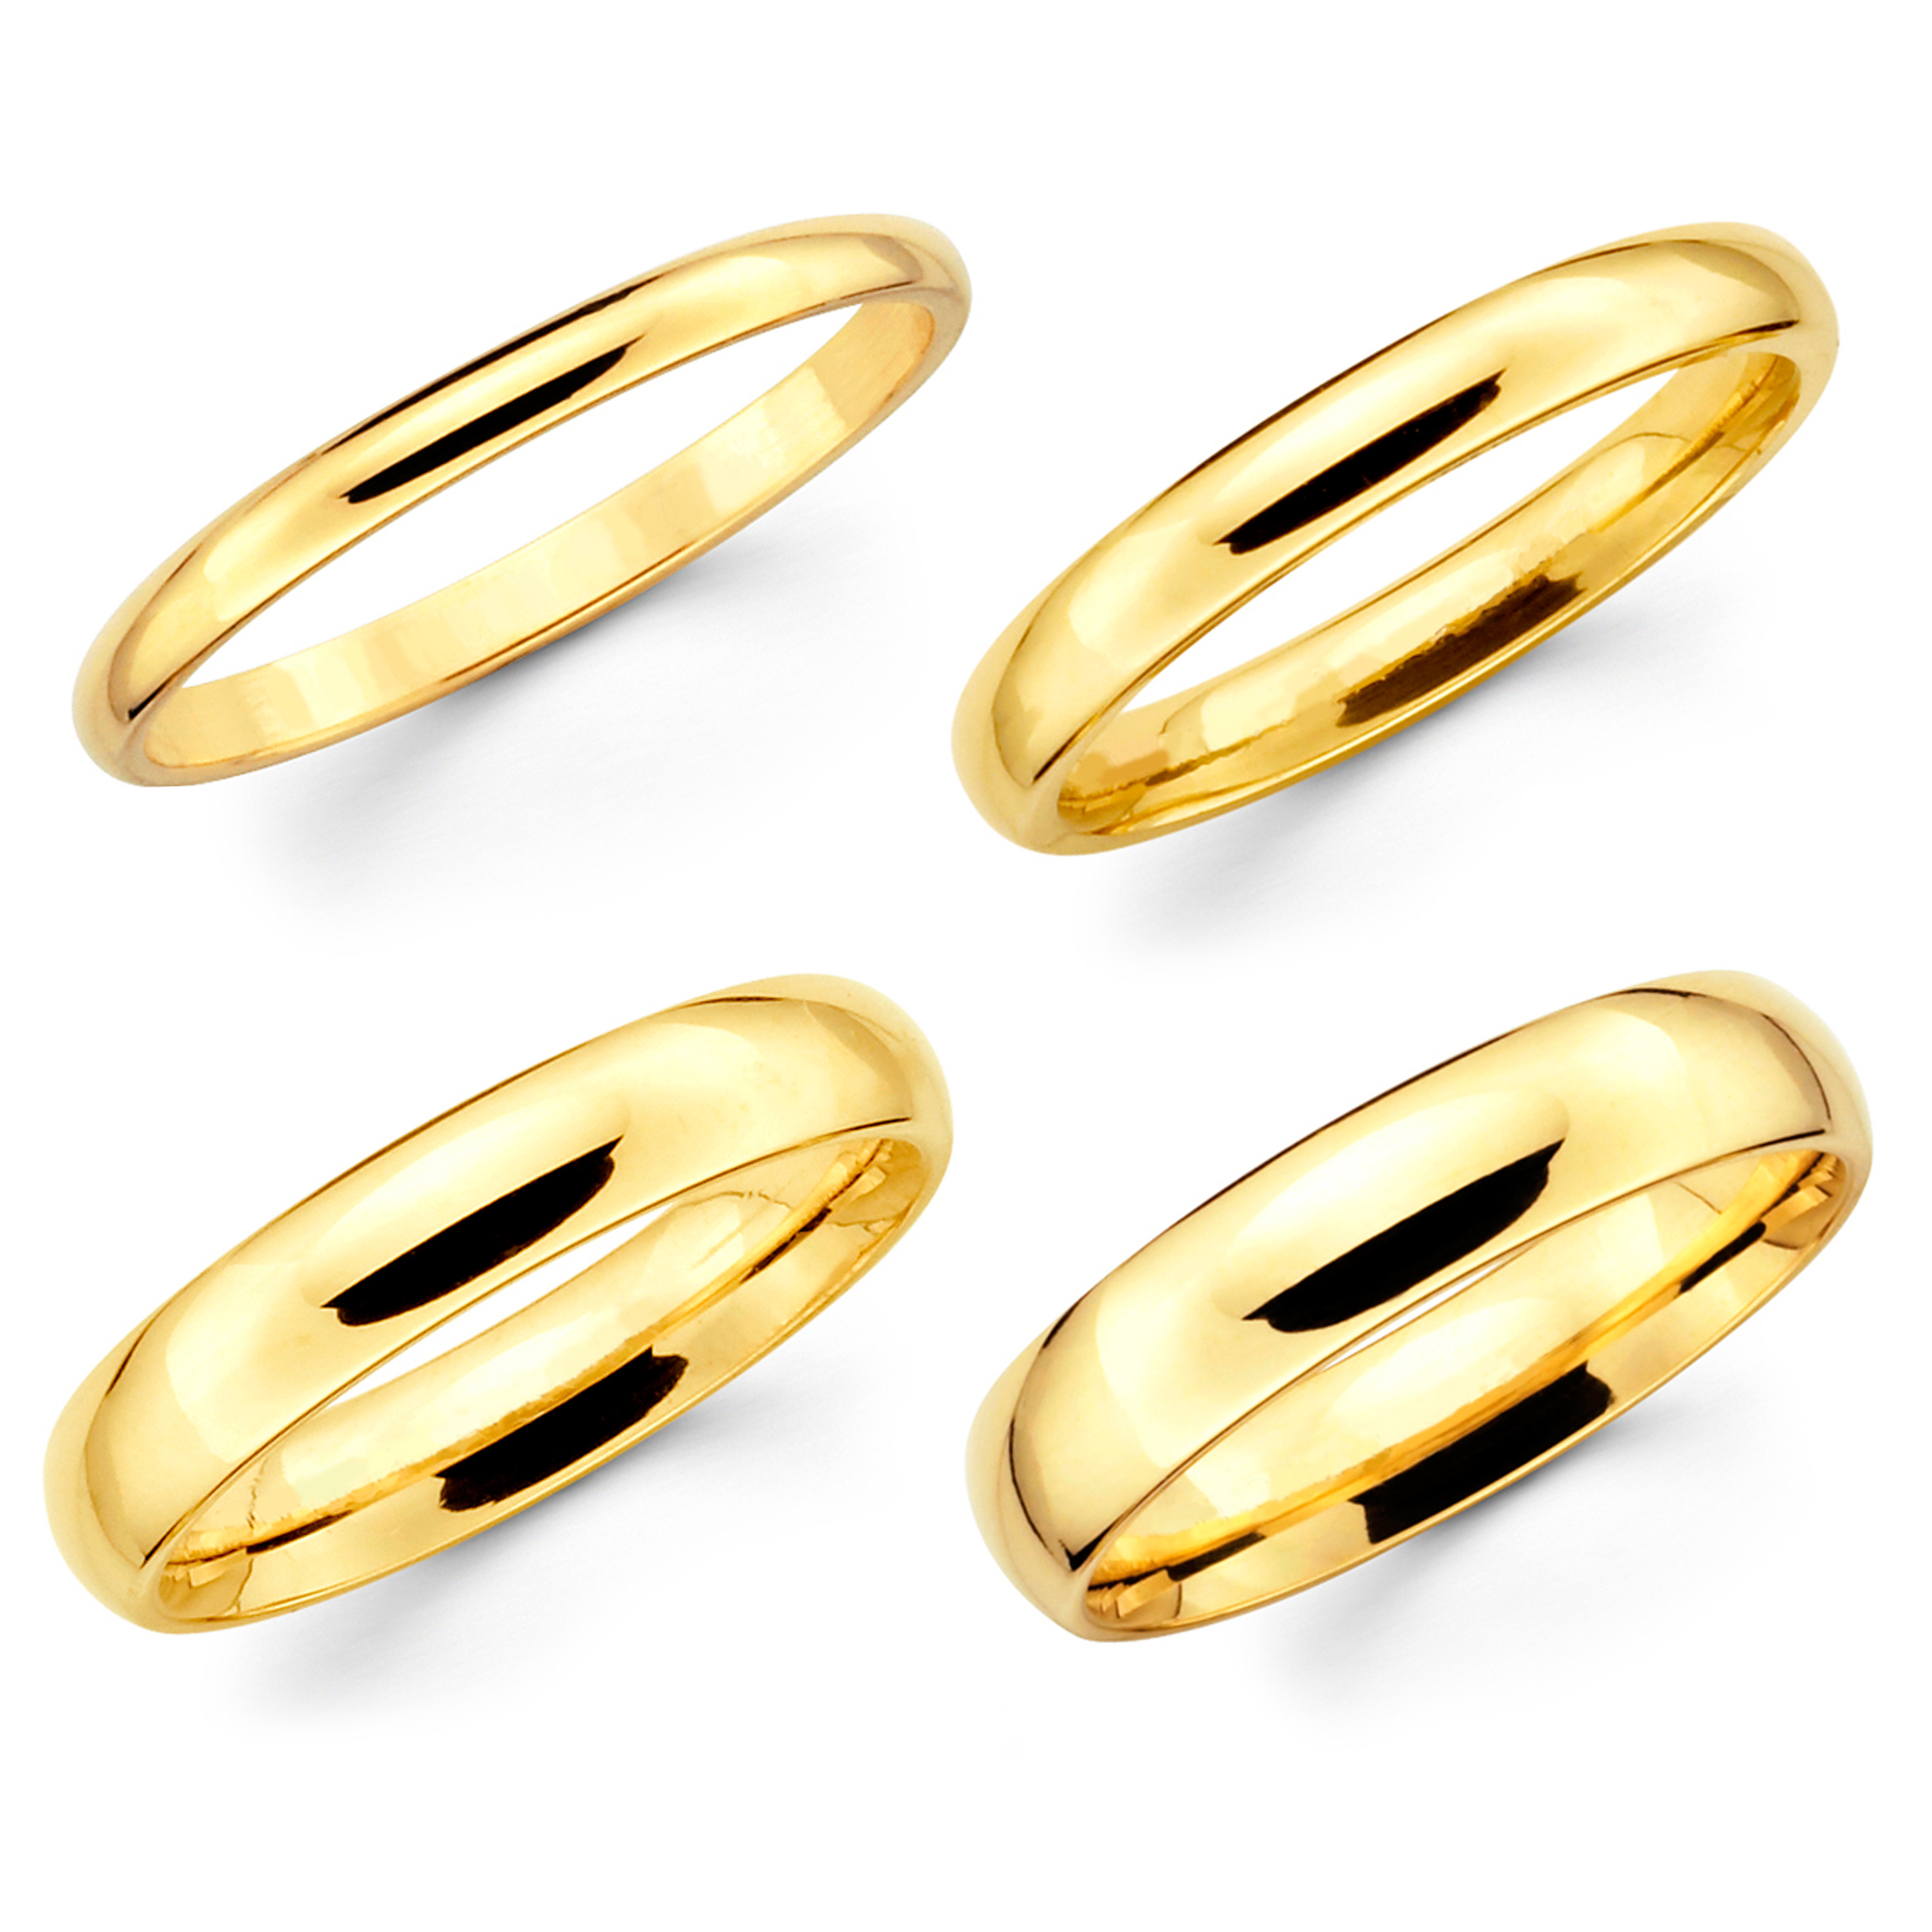 rings wedding choosing silver gold for bands rules plain oblacoder your lovely and